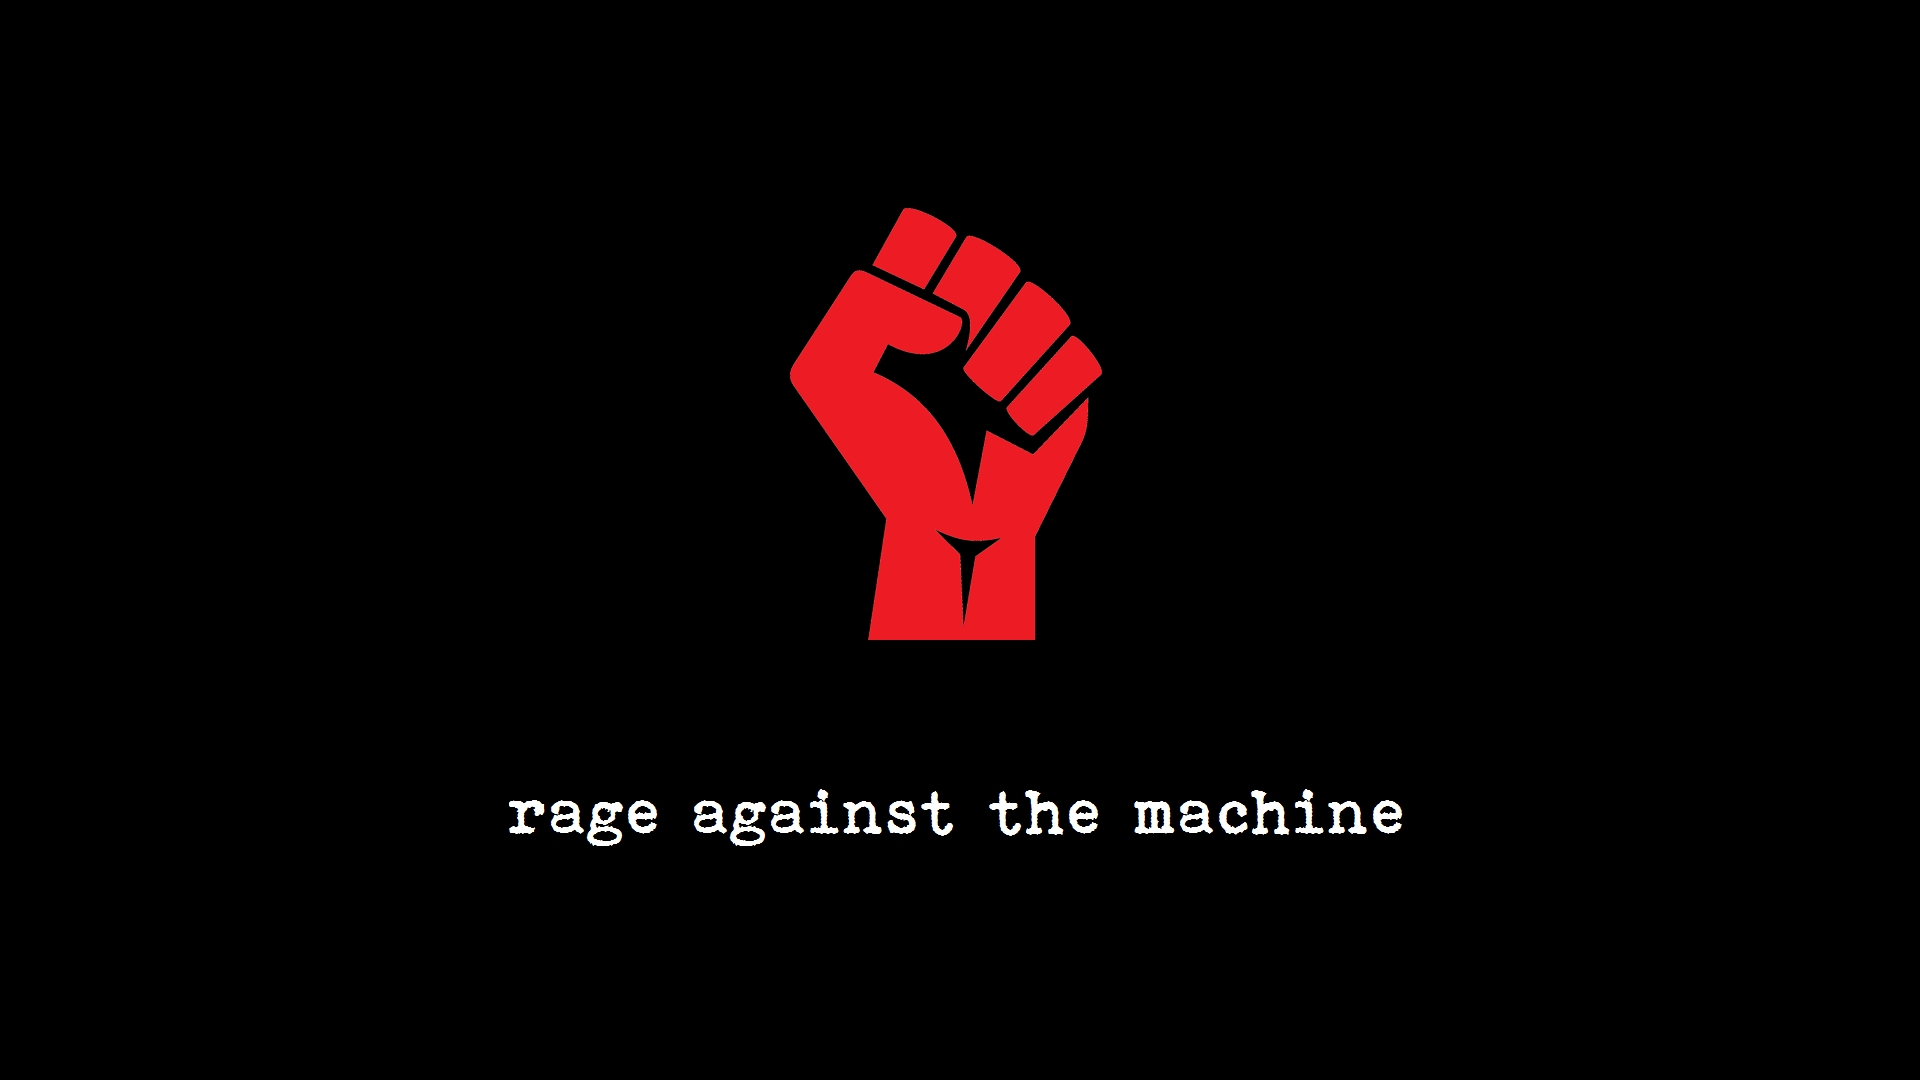 rage against the machine wallpaper full hd fond d'écran and arrière